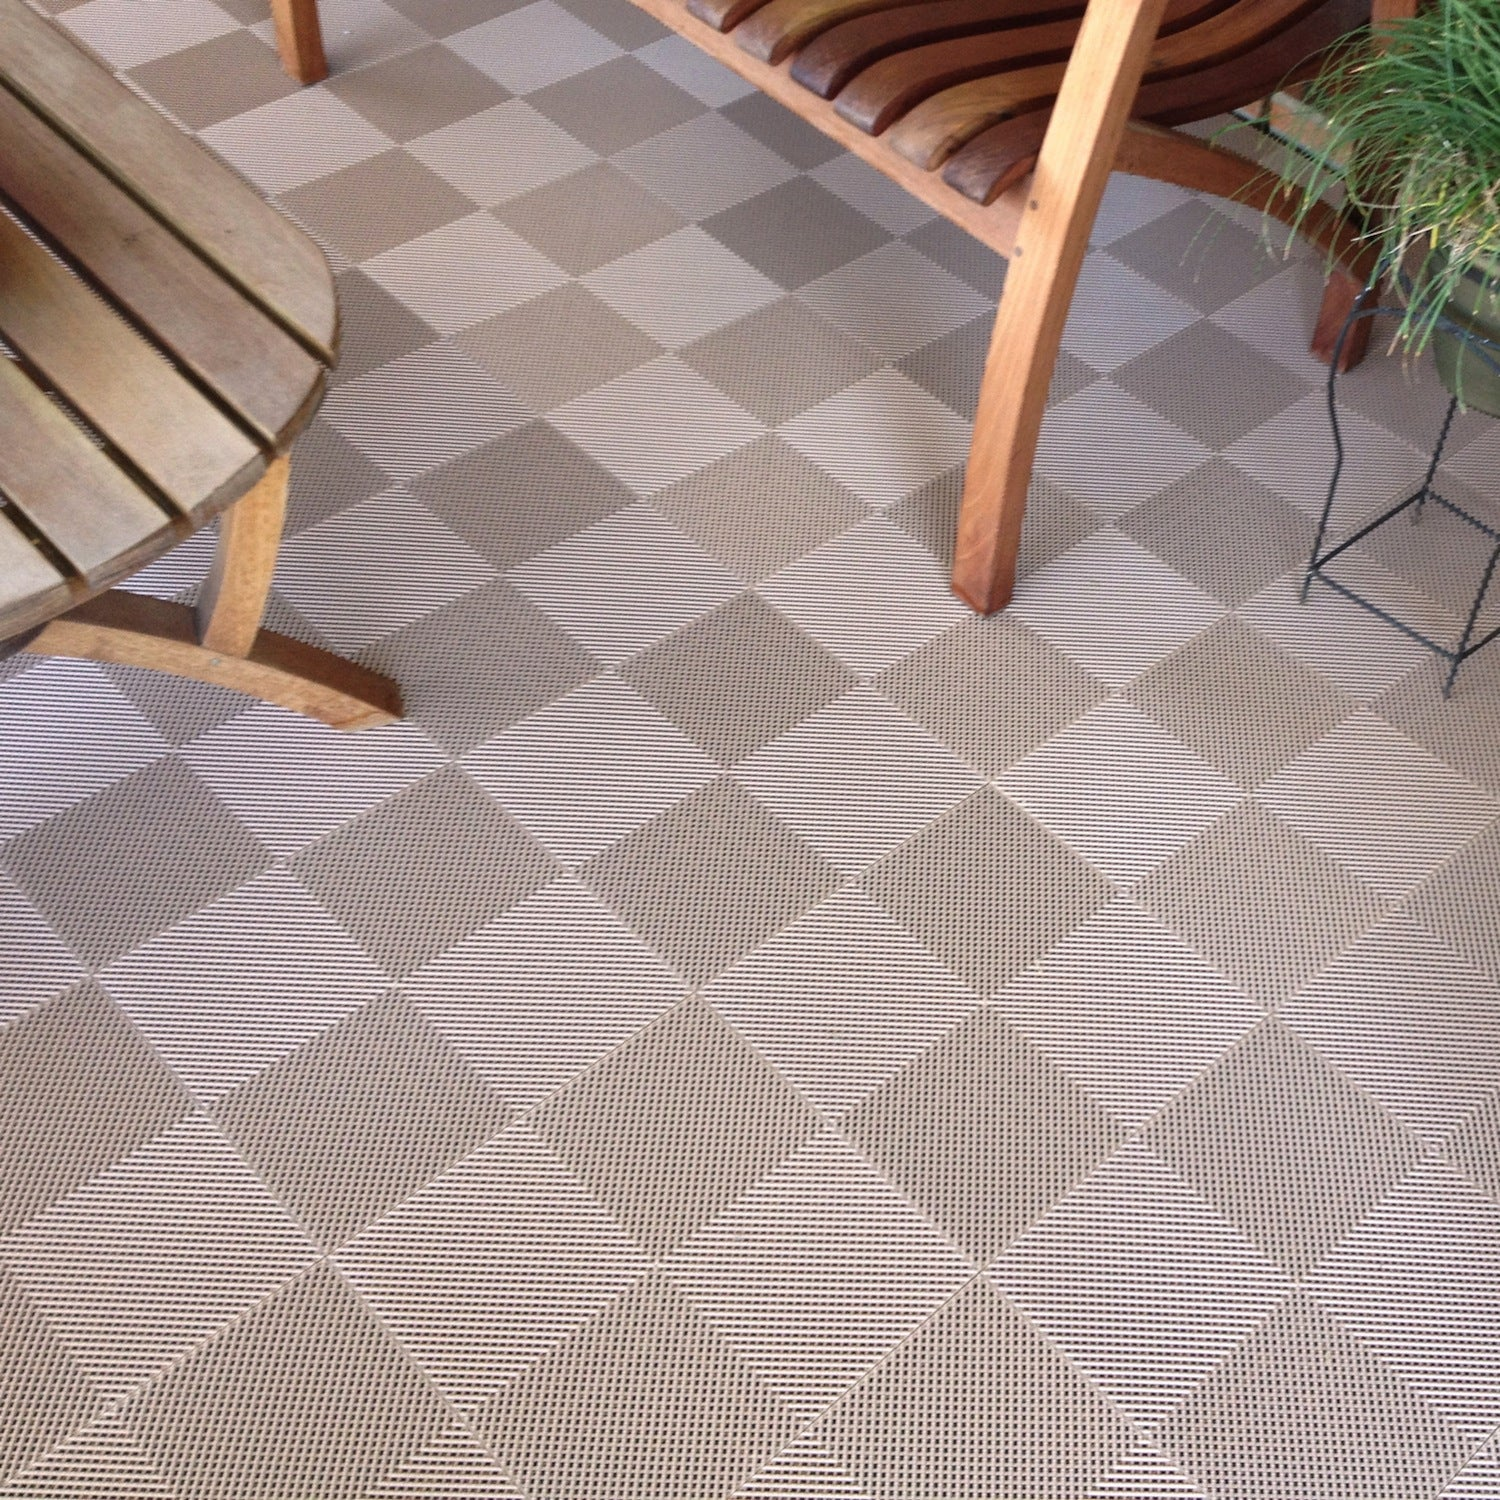 BlockTile Deck and Patio Flooring Interlocking Perforated Tiles ...